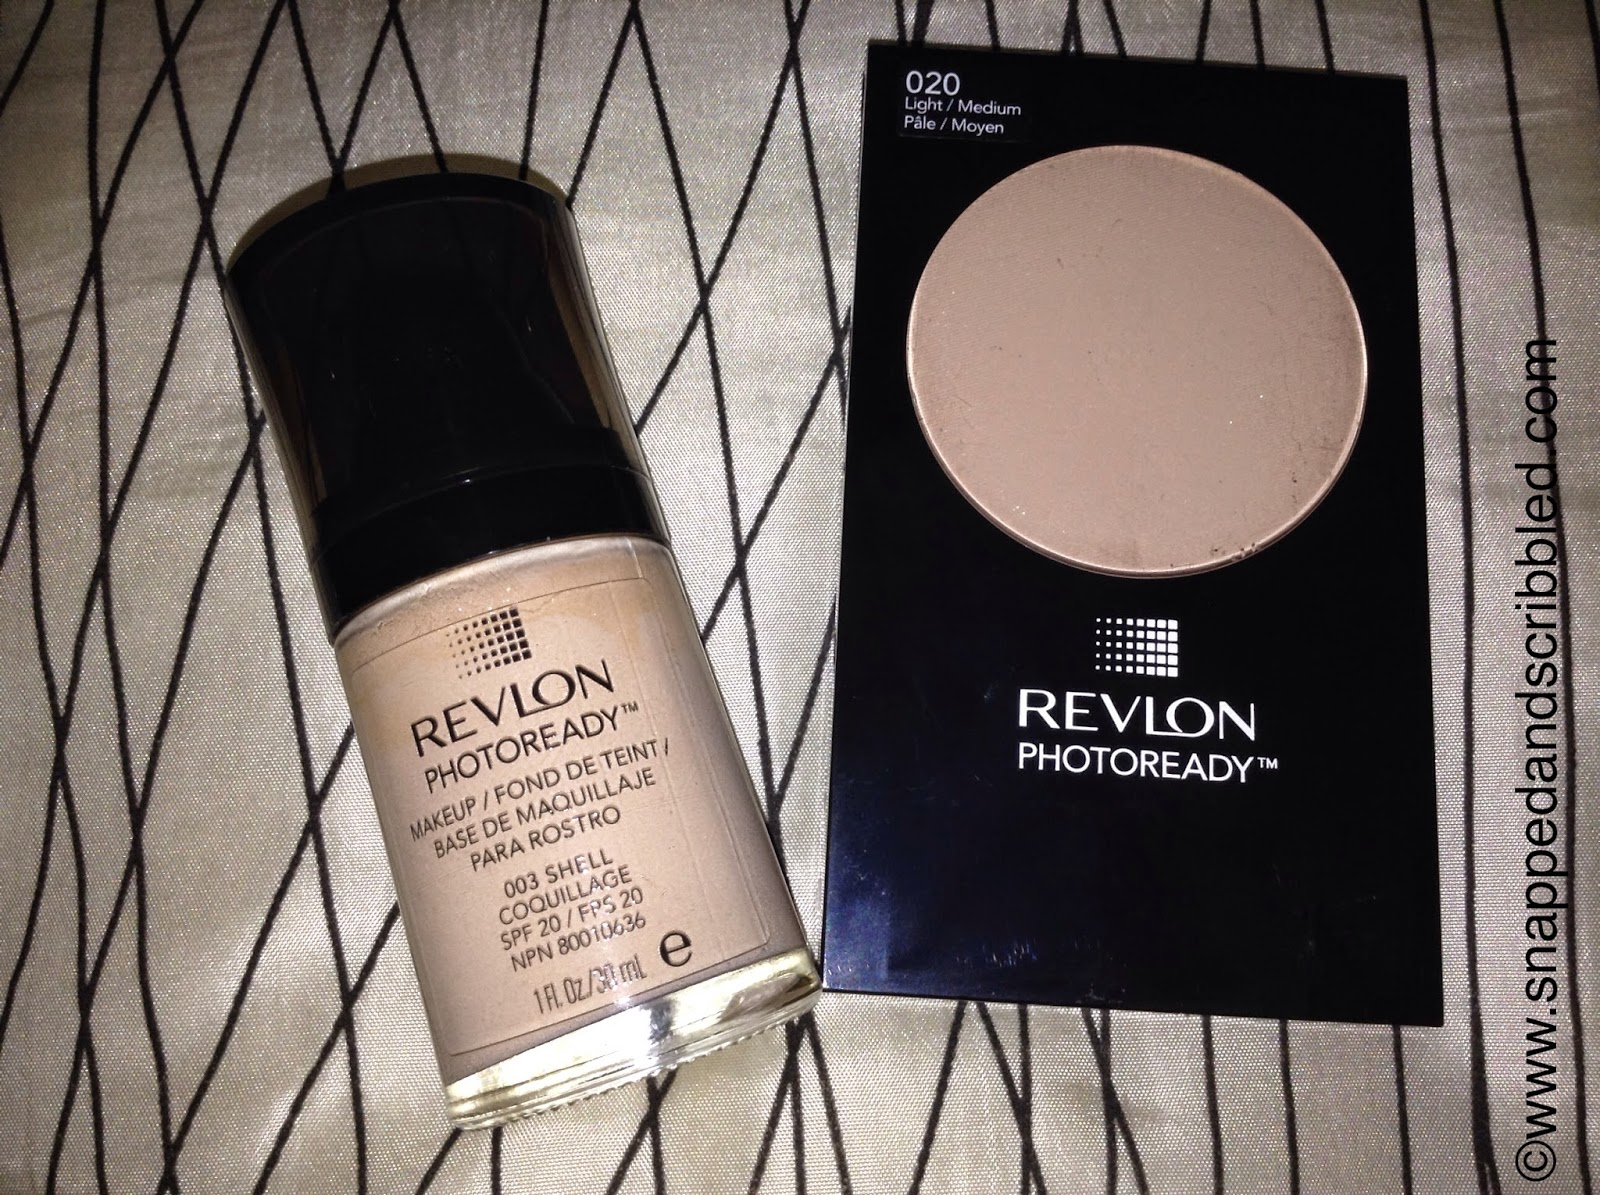 Great Deal at Watsons: Revlon PhotoReady